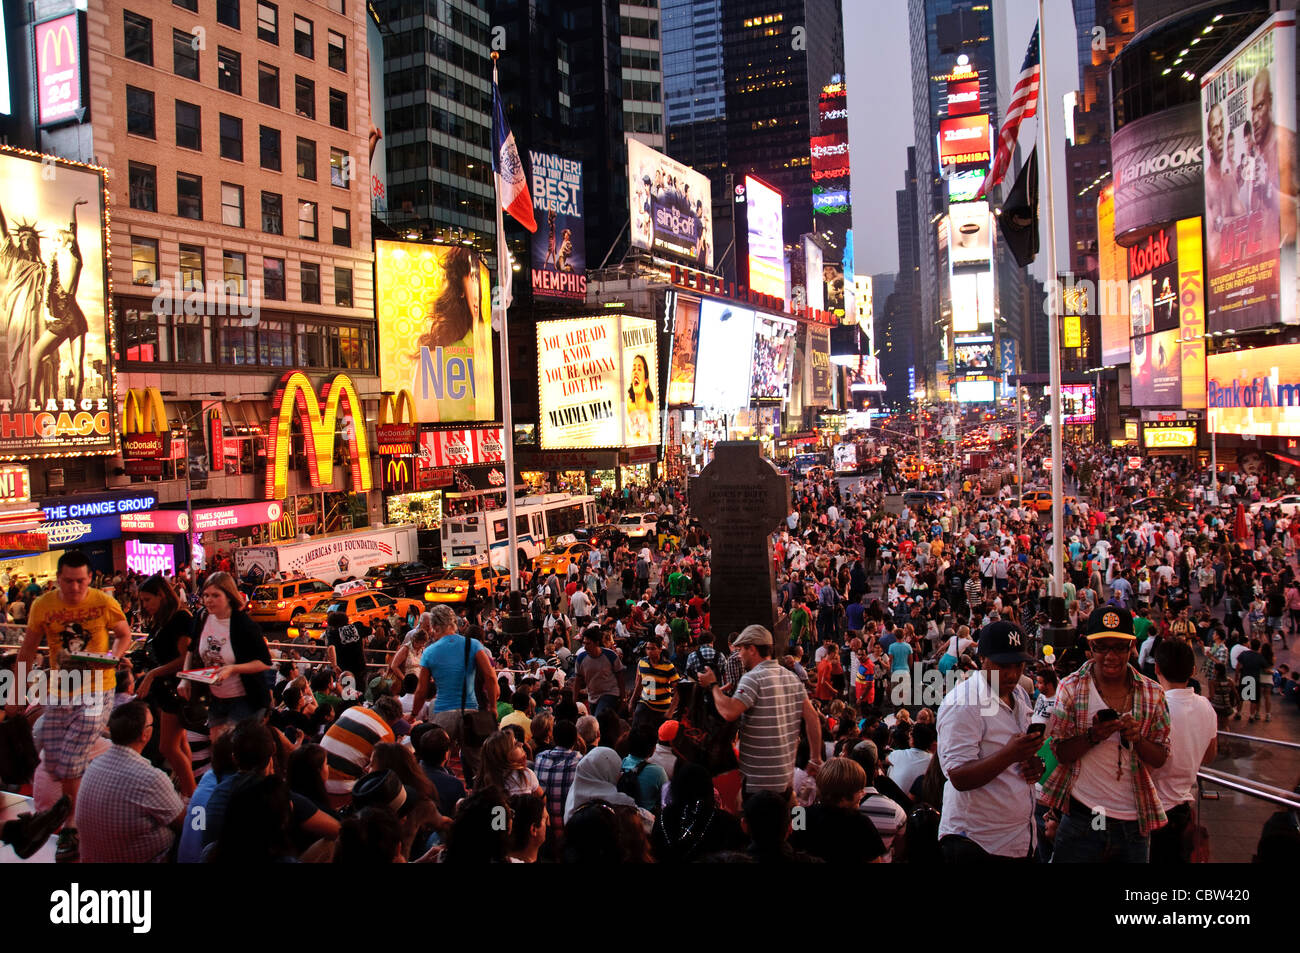 About AMC 42nd Street NYC New Years Eve. Take your New Year's Eve celebration to the max and spend the night partying in the country's most popular multiplex – AMC Times Square!